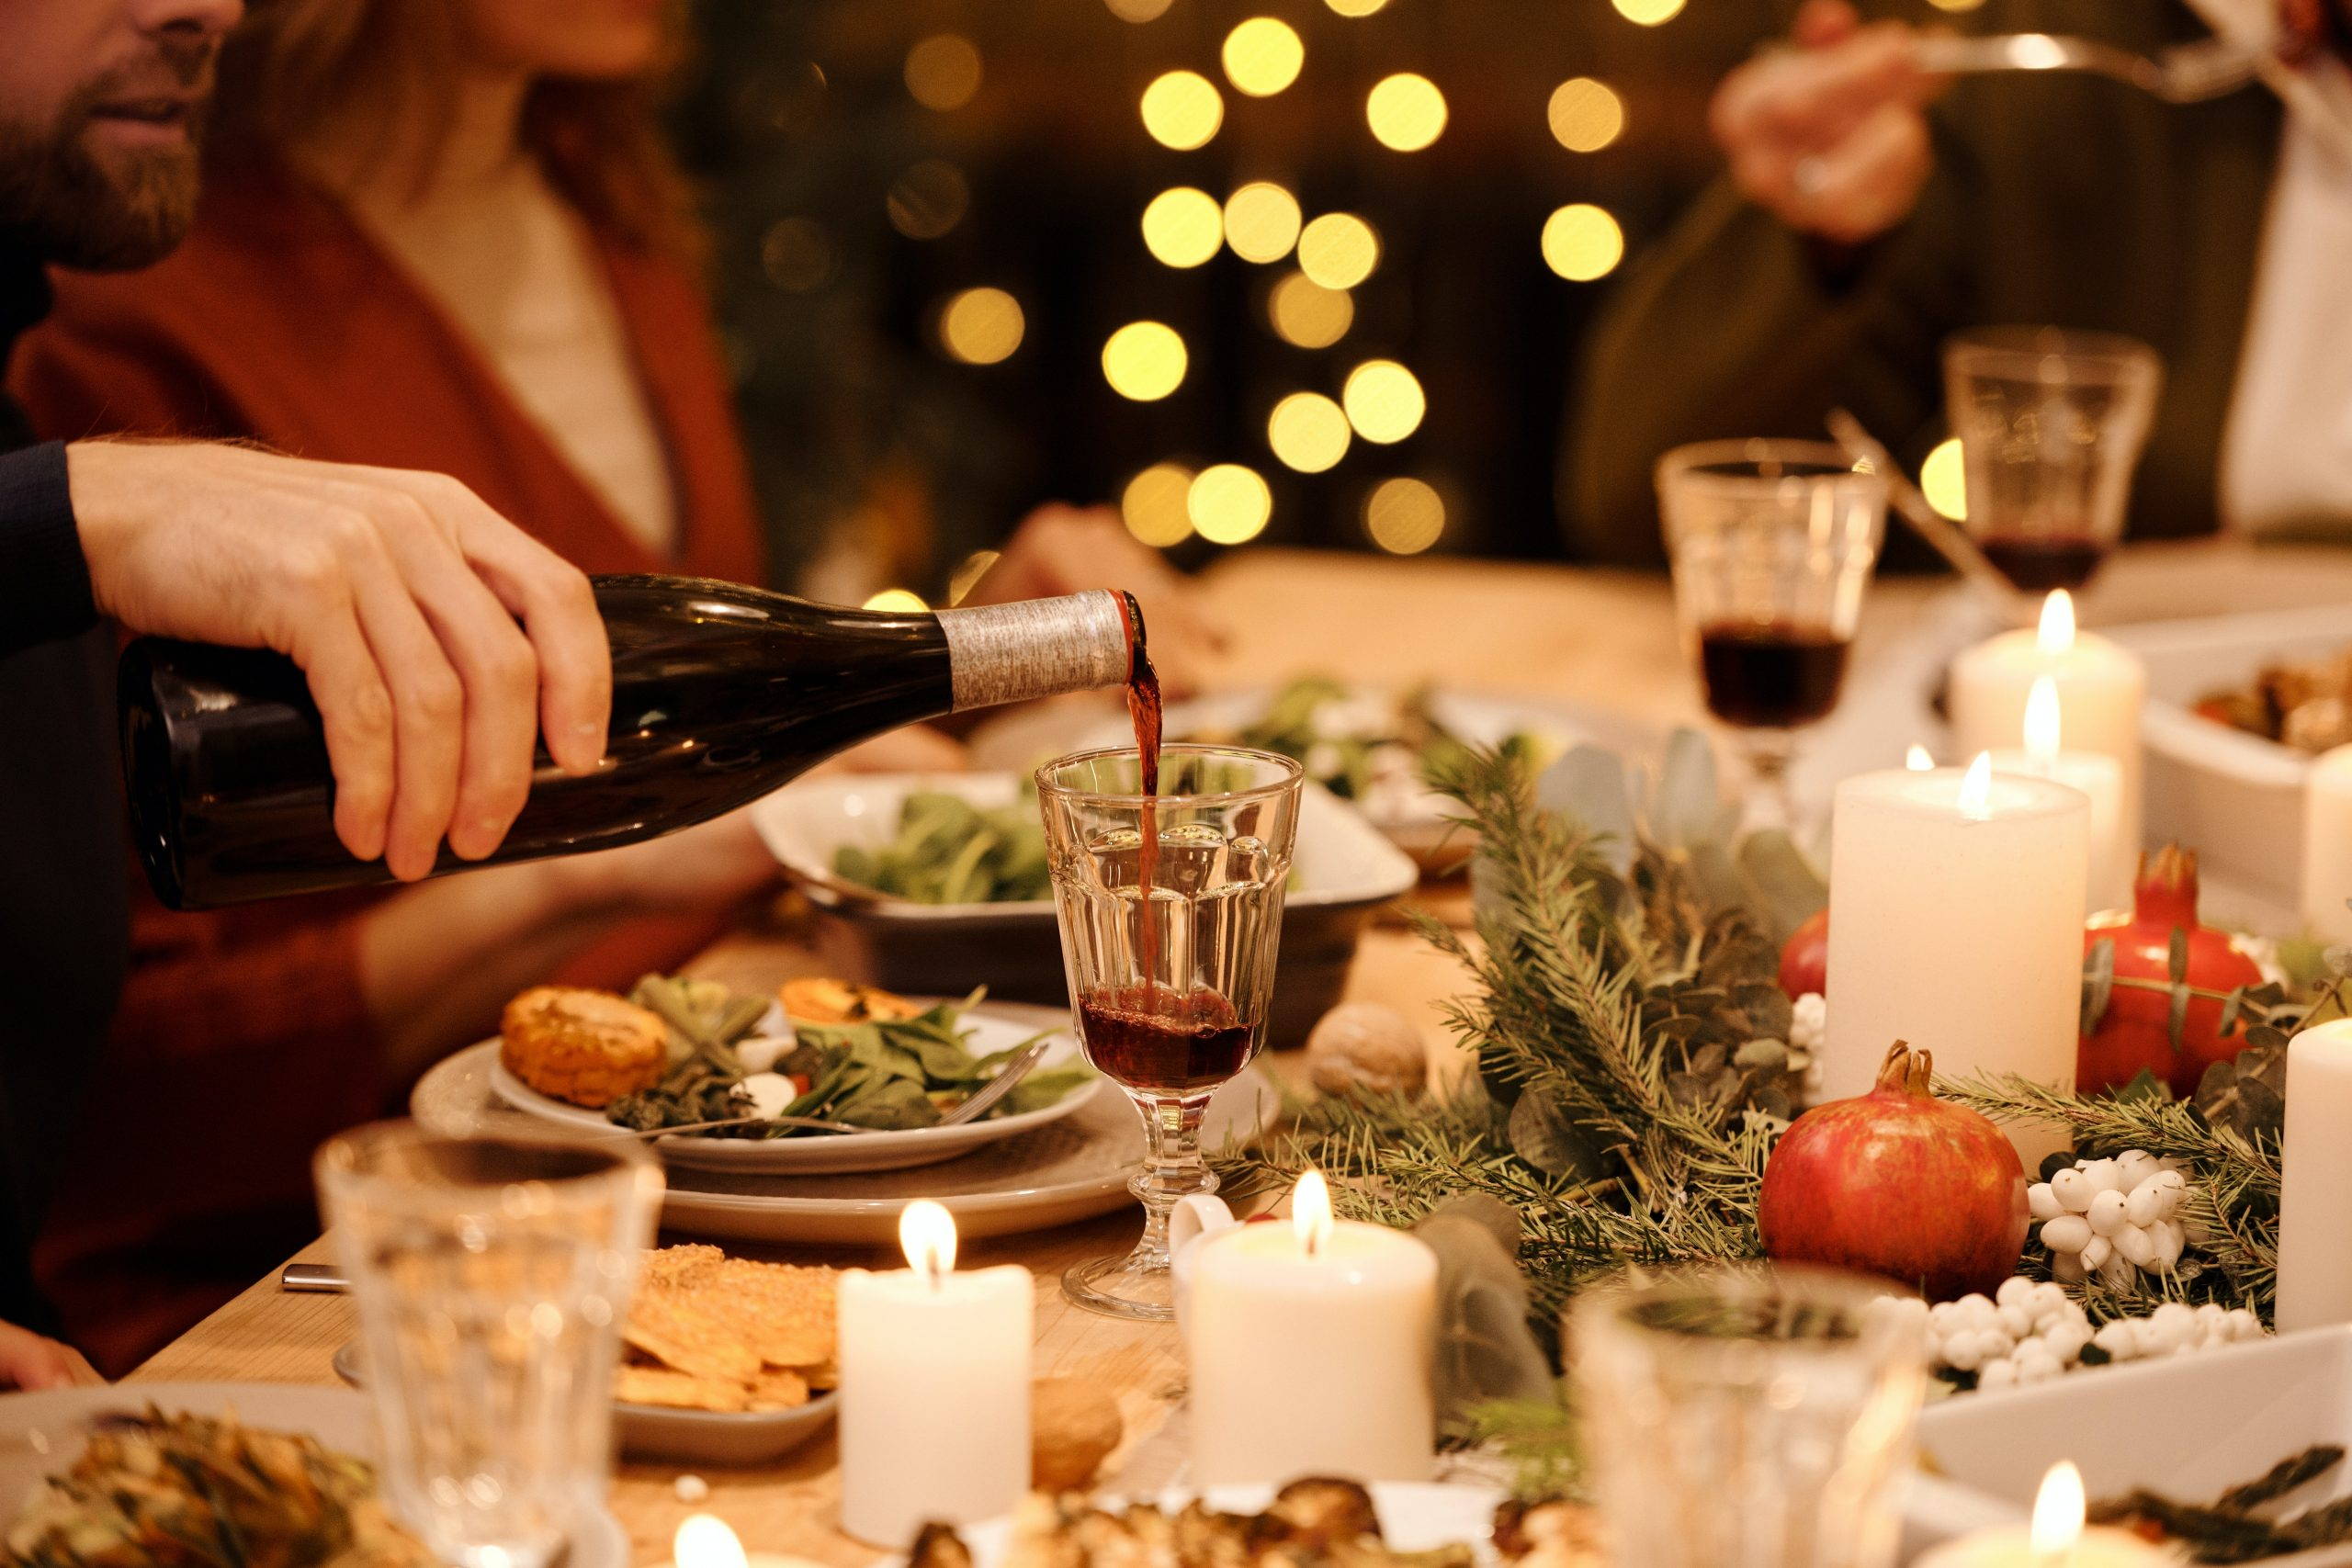 Could red wine be a better choice this festive season?